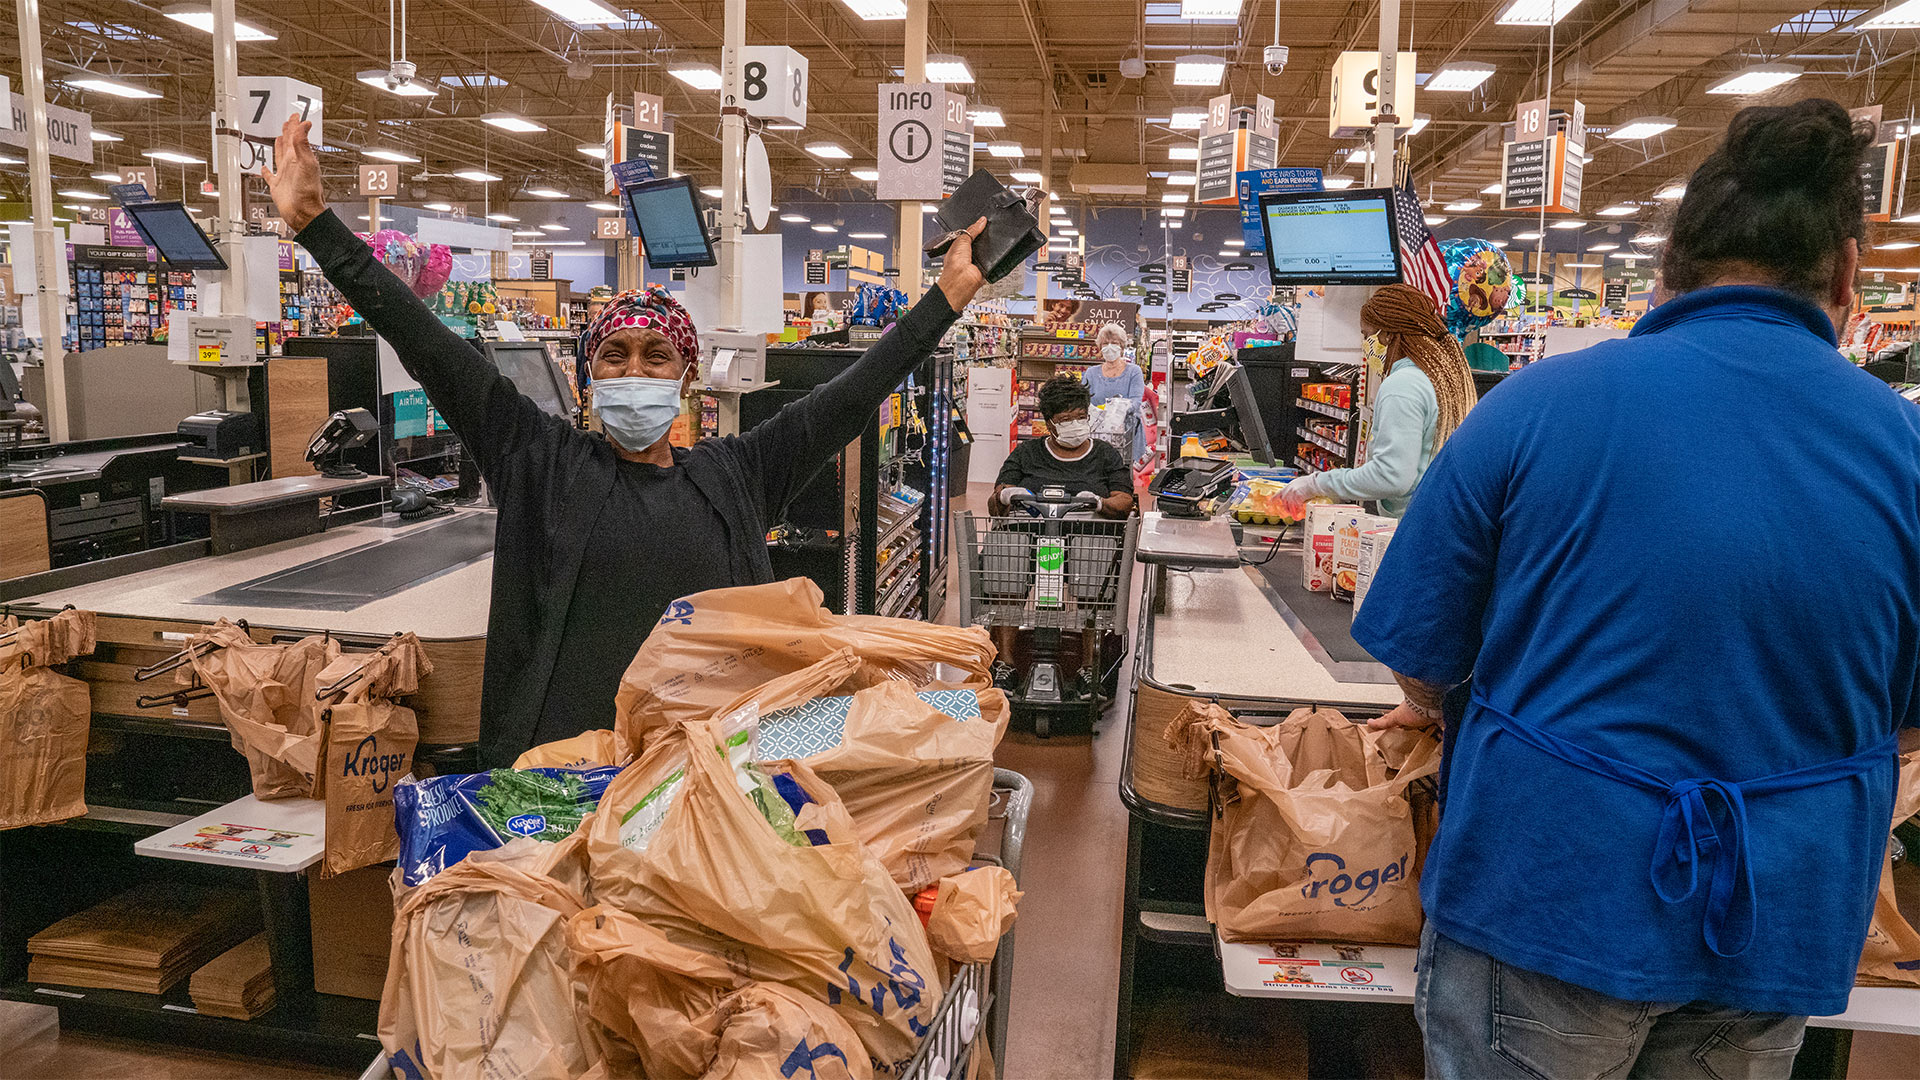 Tyler Perry Pays for All Groceries in Kroger 5